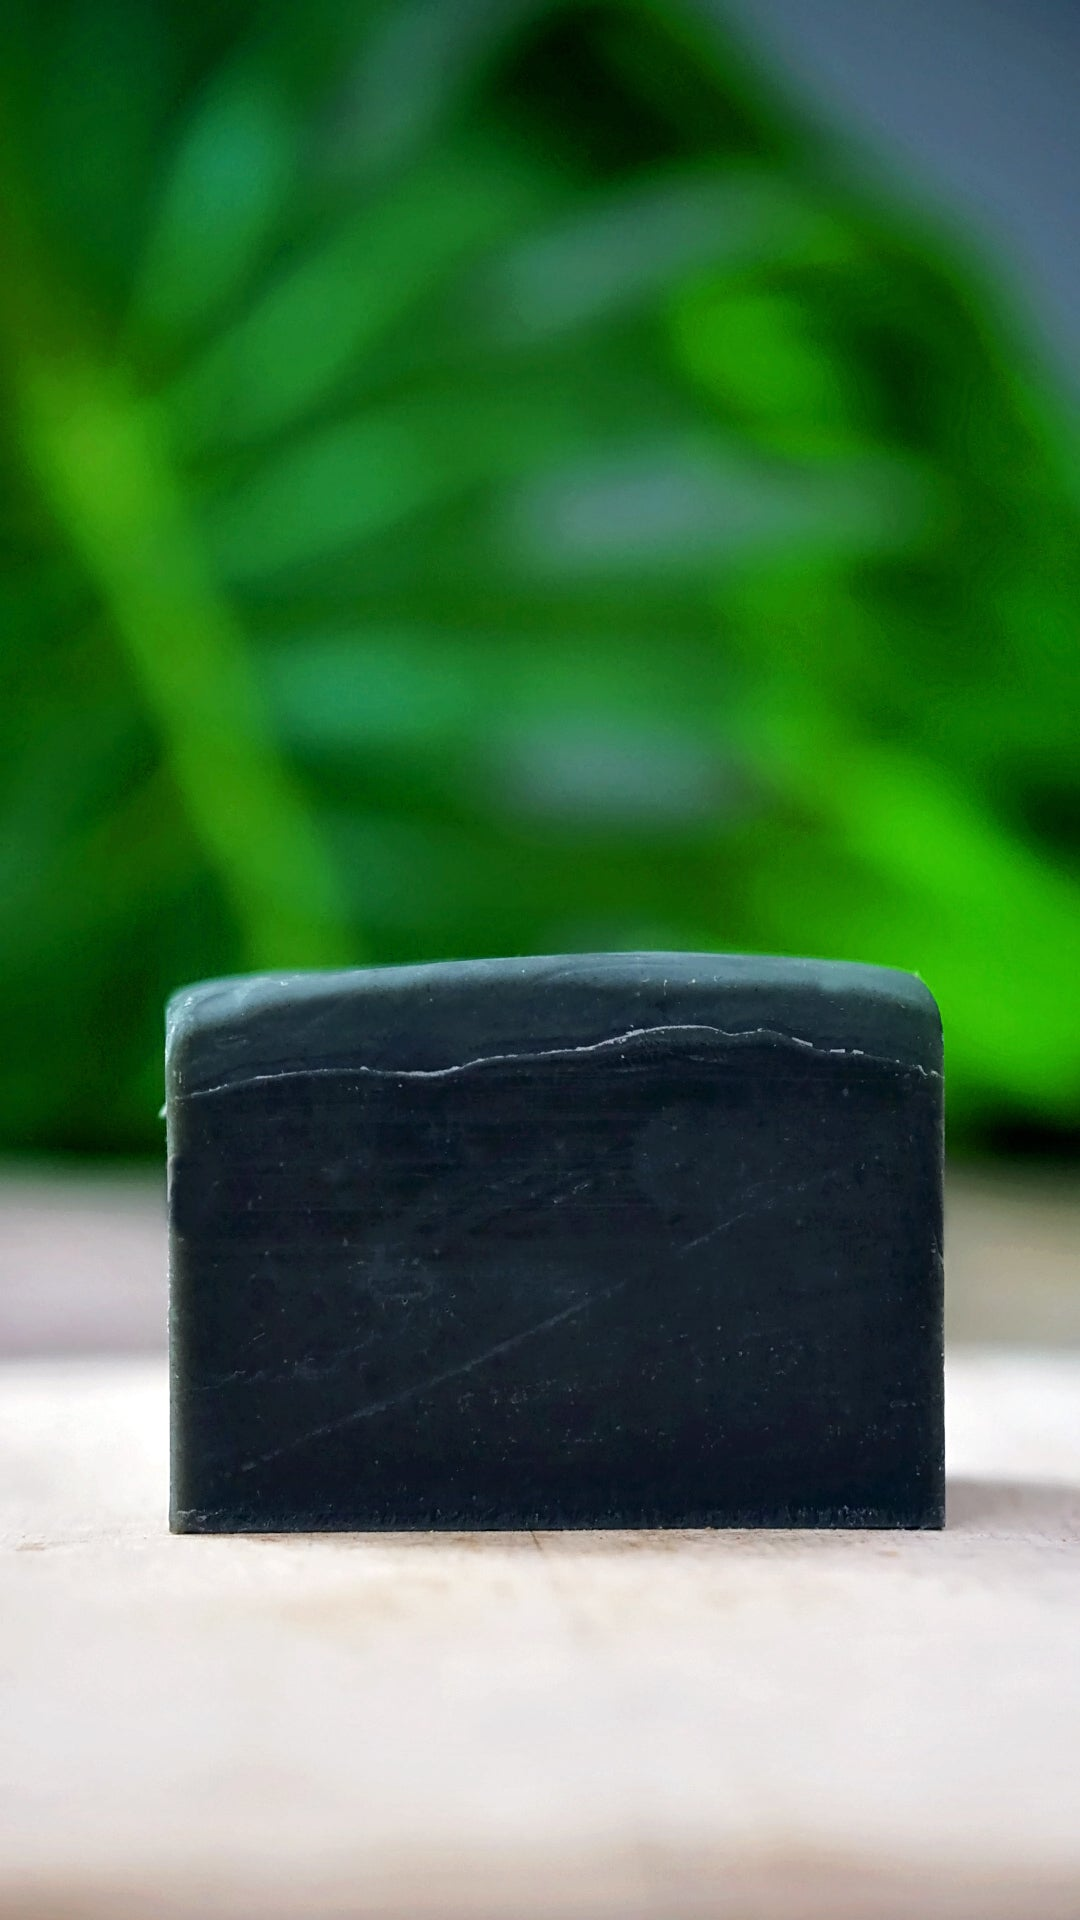 Triple Detox - CDF Skin Care - Triple Detox Charcoal Soap -  Oily, acne and combination skin